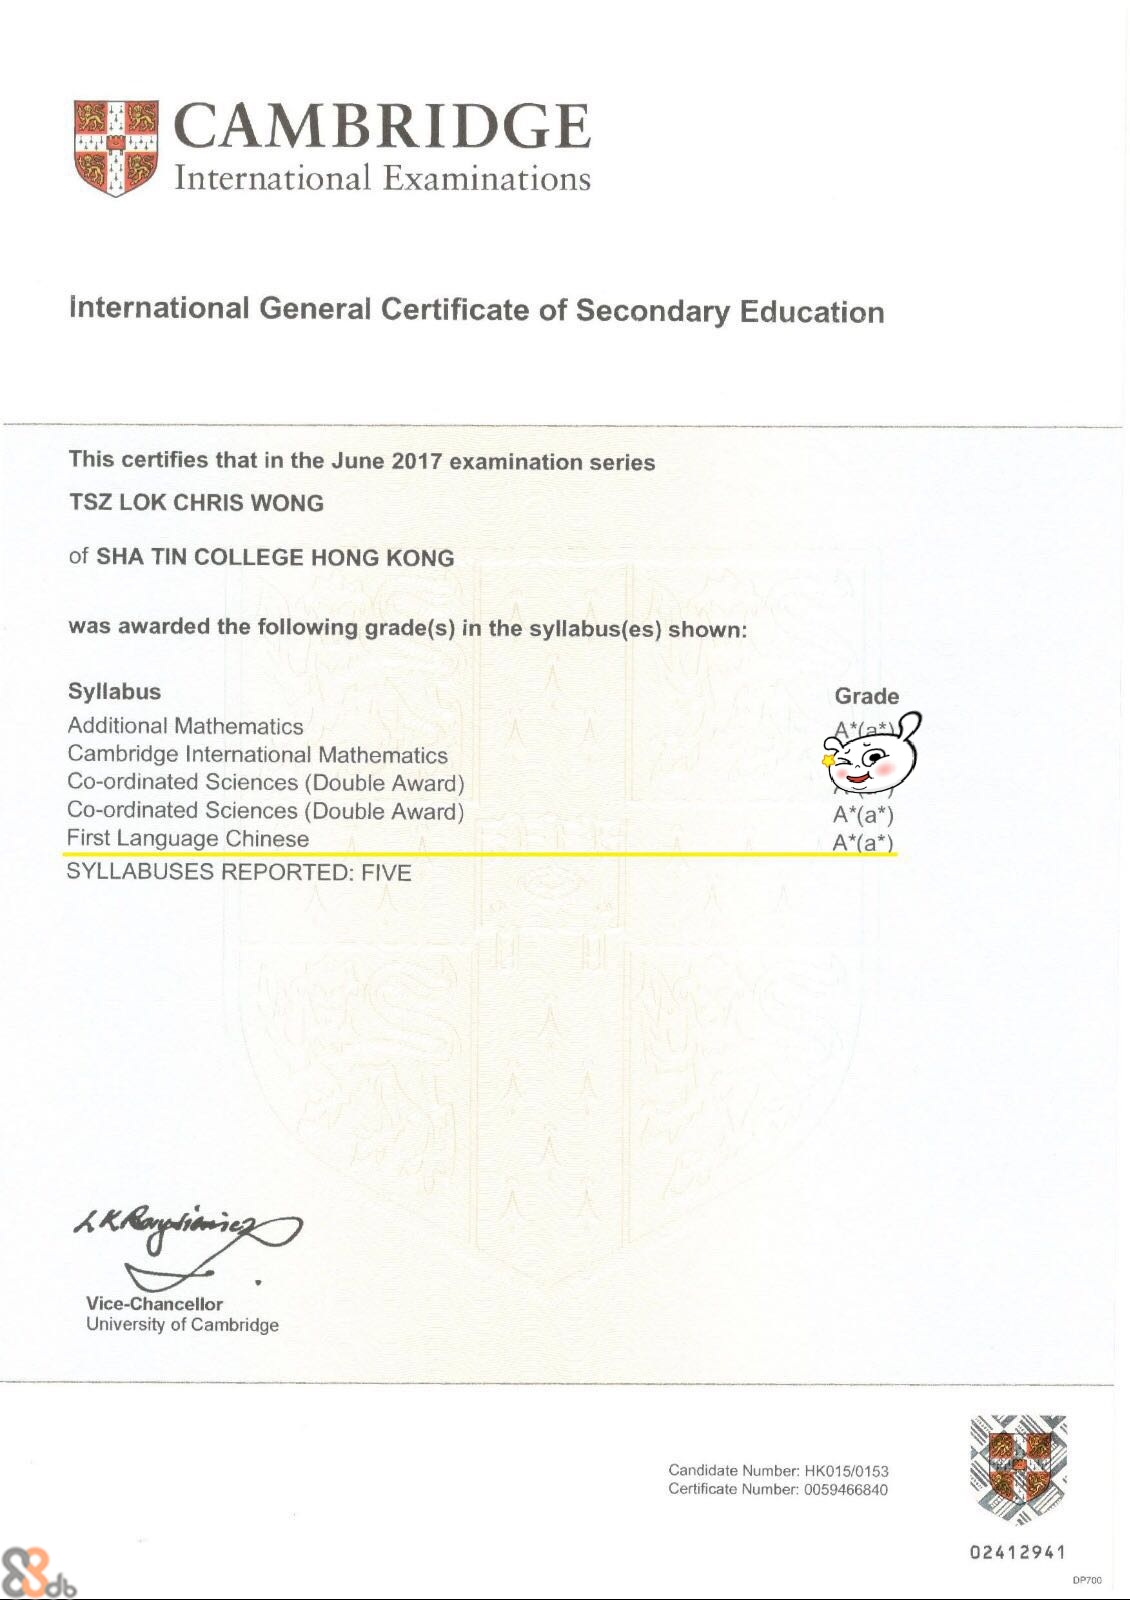 CAMBRIDGE International Examinations international General Certificate of Secondary Education This certifies that in the June 2017 examination series TSZ LOK CHRIS WONG of SHA TIN COLLEGE HONG KONG was awarded the following grade(s) in the syllabus(es) shown: Syllabus Additional Mathematics Cambridge International Mathematics Co-ordinated Sciences (Double Award) Co-ordinated Sciences (Double Award) First Language Chinese SYLLABUSES REPORTED: FIVE Grade A (a*) Vice-Chancellor University of Cambridge Candidate Number: HK015/0153 Certificate Number: 0059466840 02412941 DP700  text,font,product,line,area